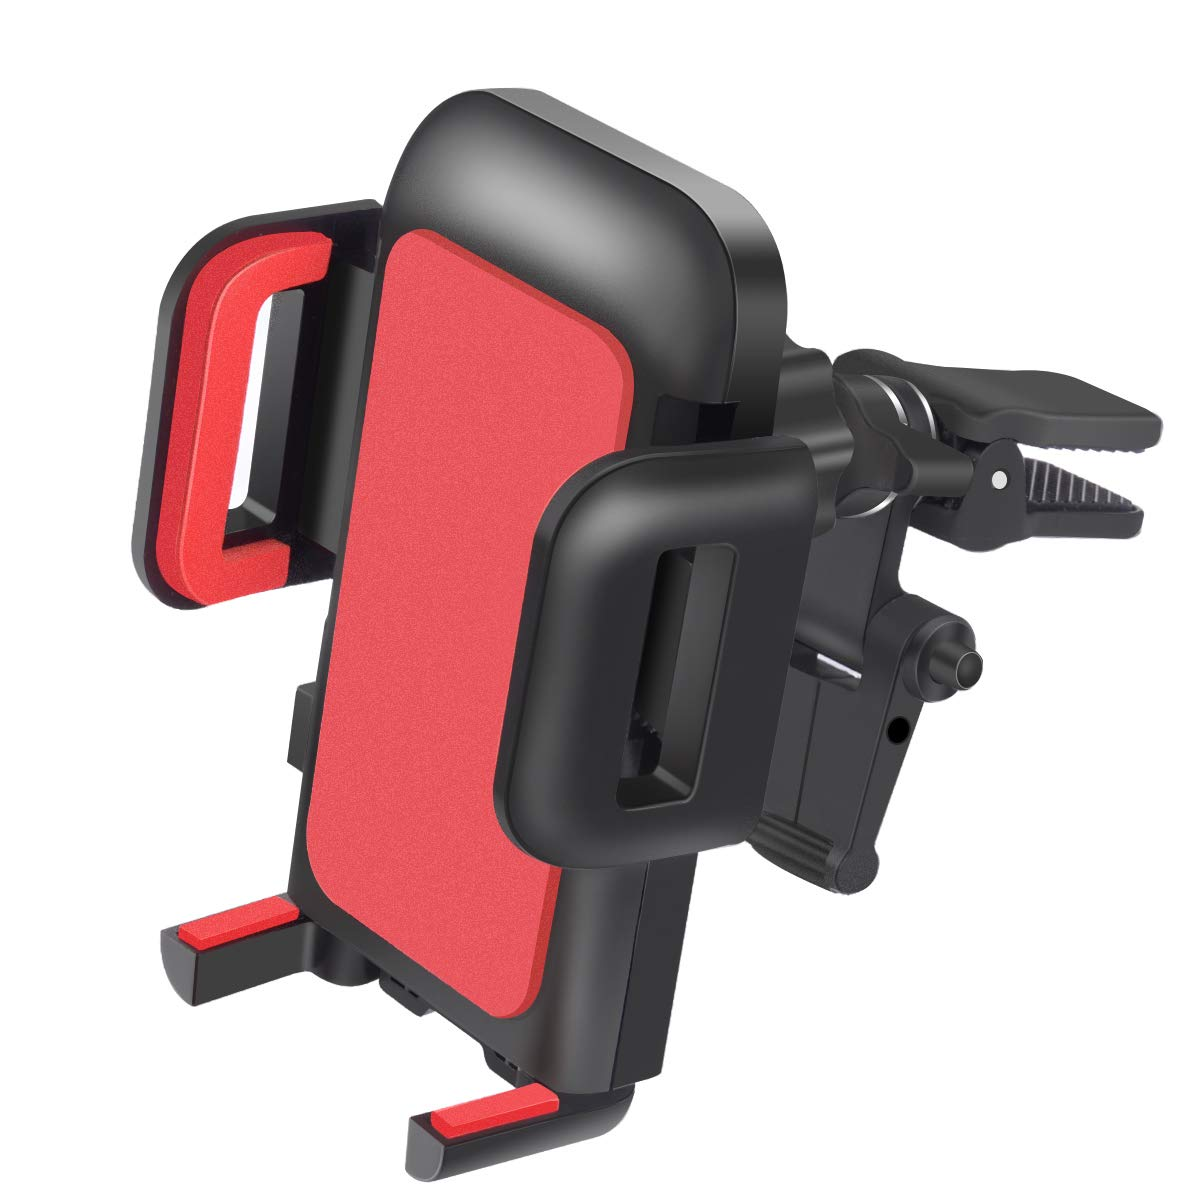 Galaxy S6//7 Note 8,HTC LG Huawei,Other Smartphone 4351490976 RED Car Mount,OTEMIK Phone Holder Universal Air Vent Phone Mount,Adjustable 360 Degree Rotation Cellphone Mount One-Button-Release for iPhone X//8//7P